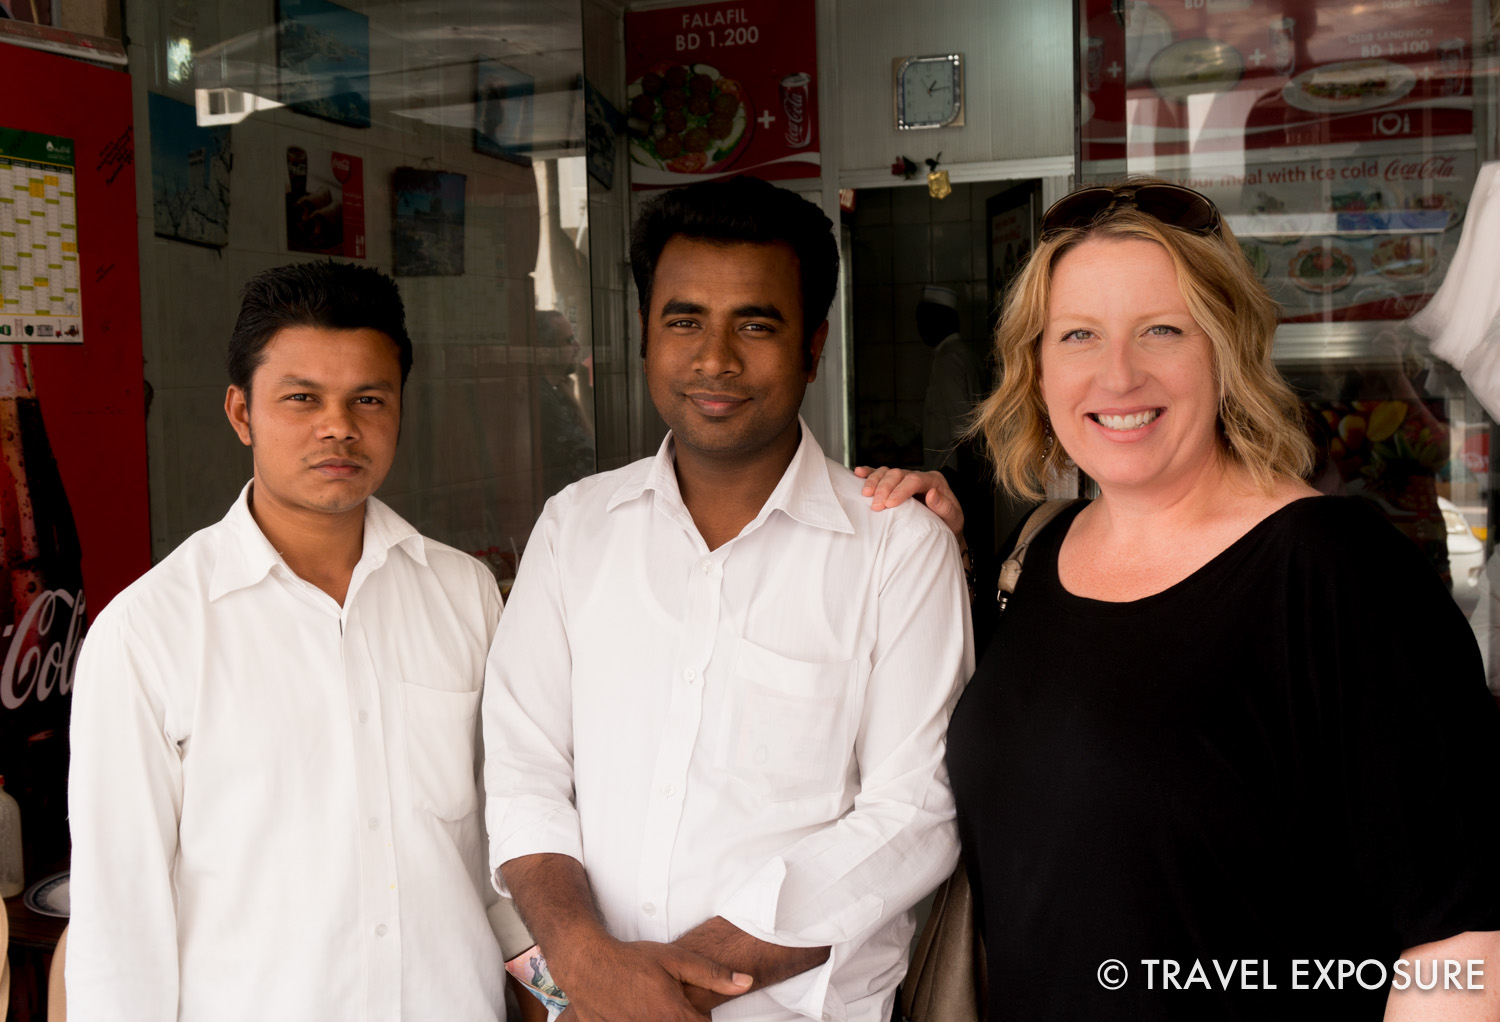 The staff at one of Kathy's favorite local food joints in Bahrain.